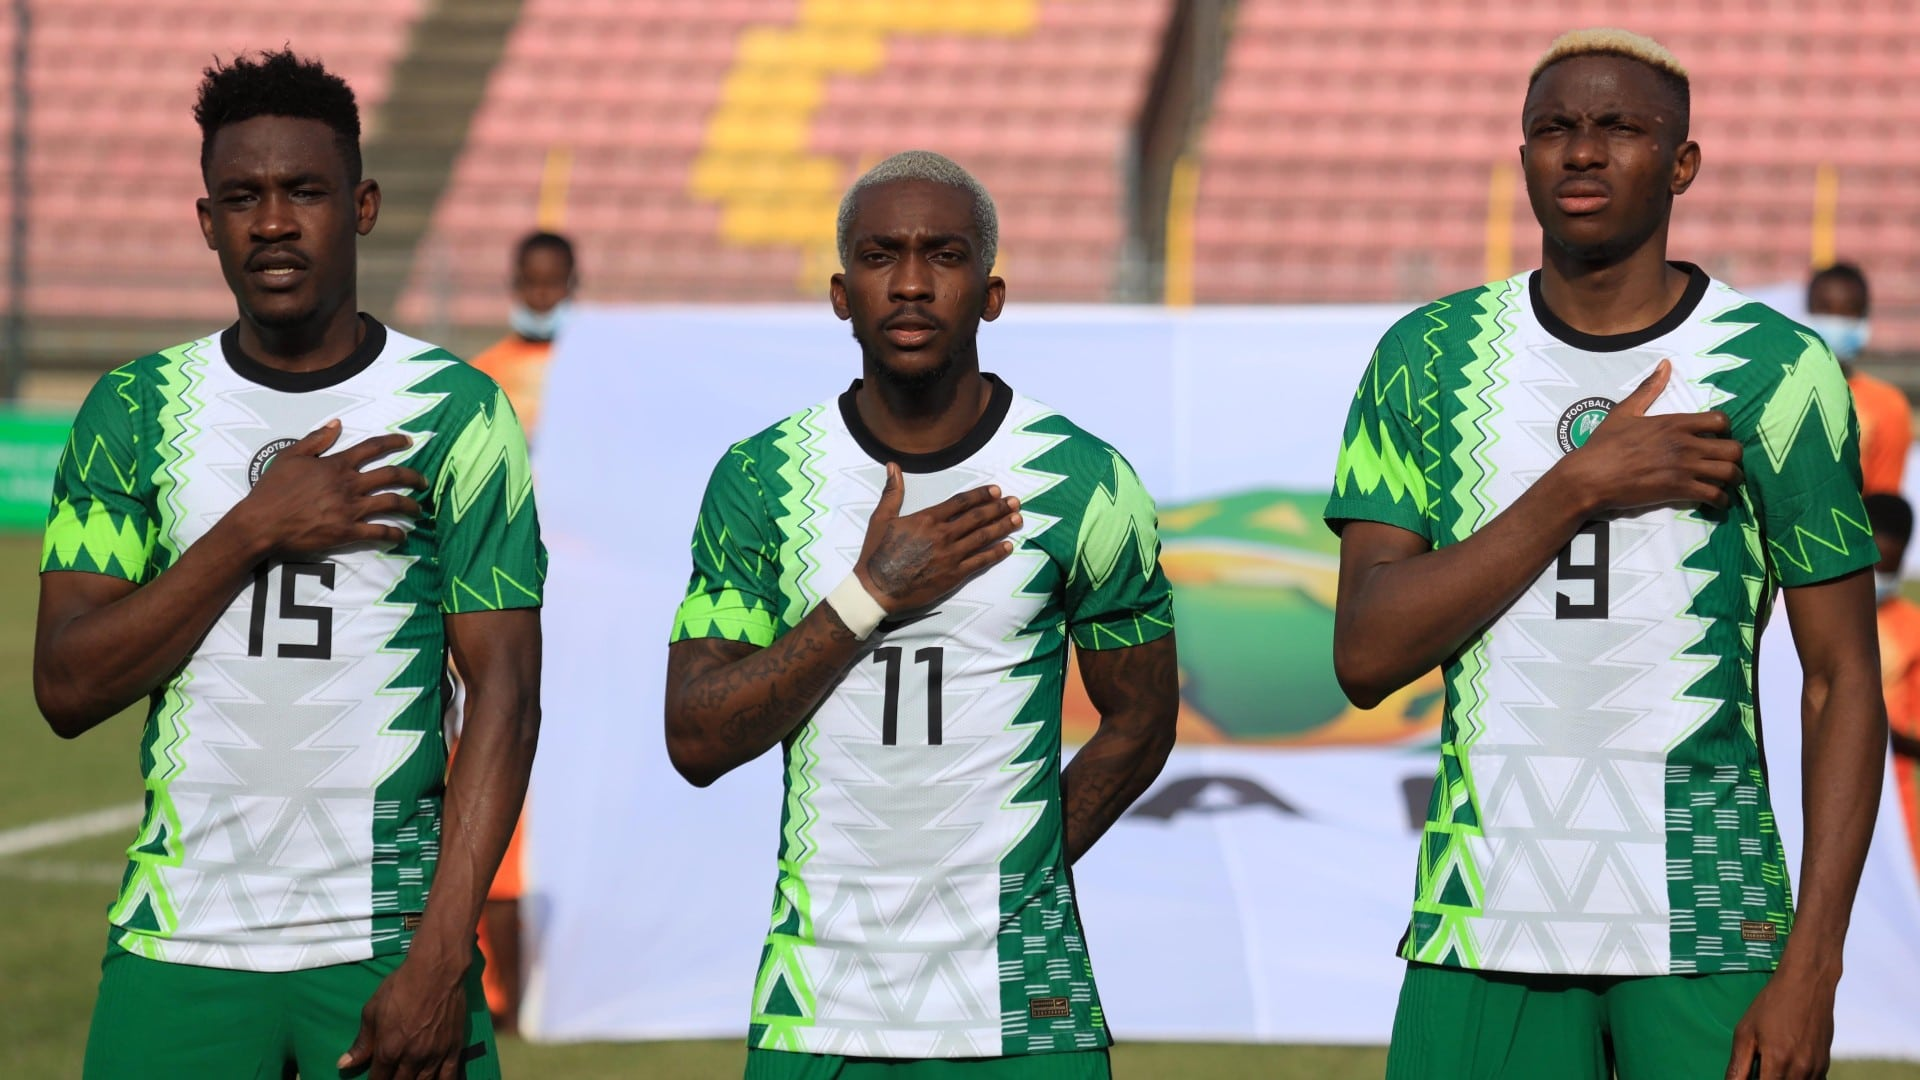 Exclusive: Why Super Eagles May Struggle In 2022 Africa Cup of Nations -Nwosu